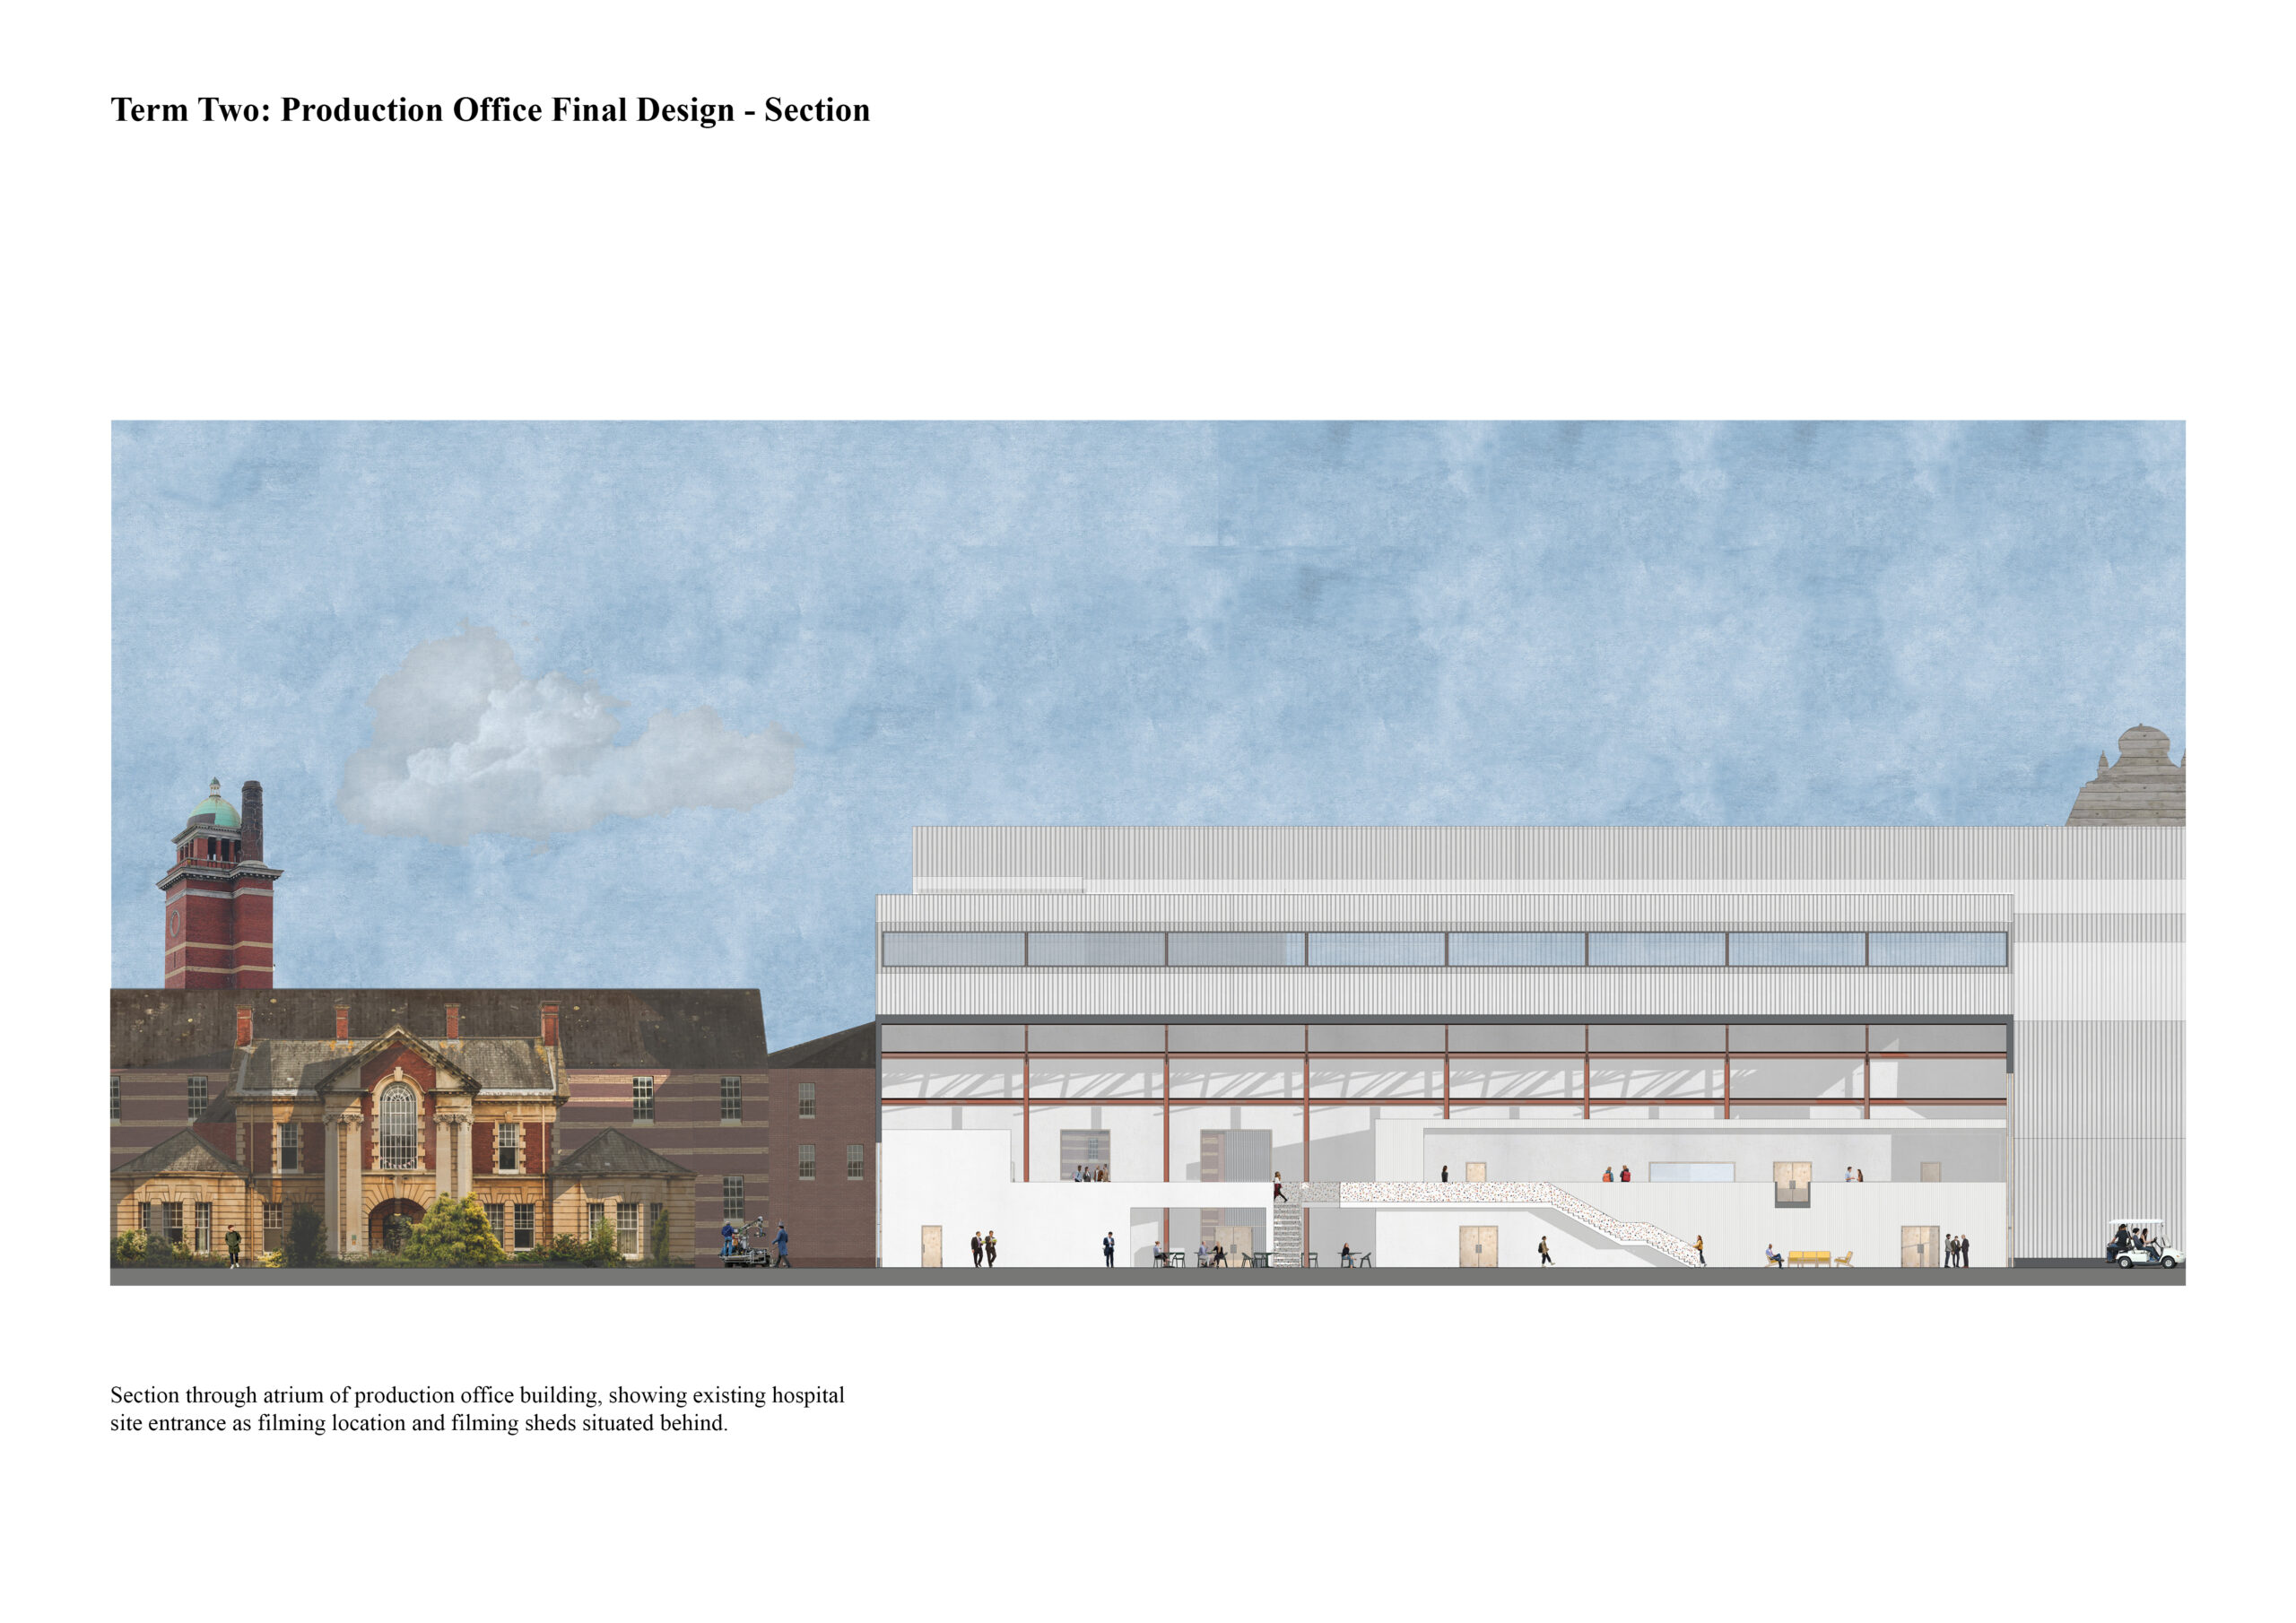 Portfolio Page of a section of the production office that showcases the atrium and the existing hospital behind.